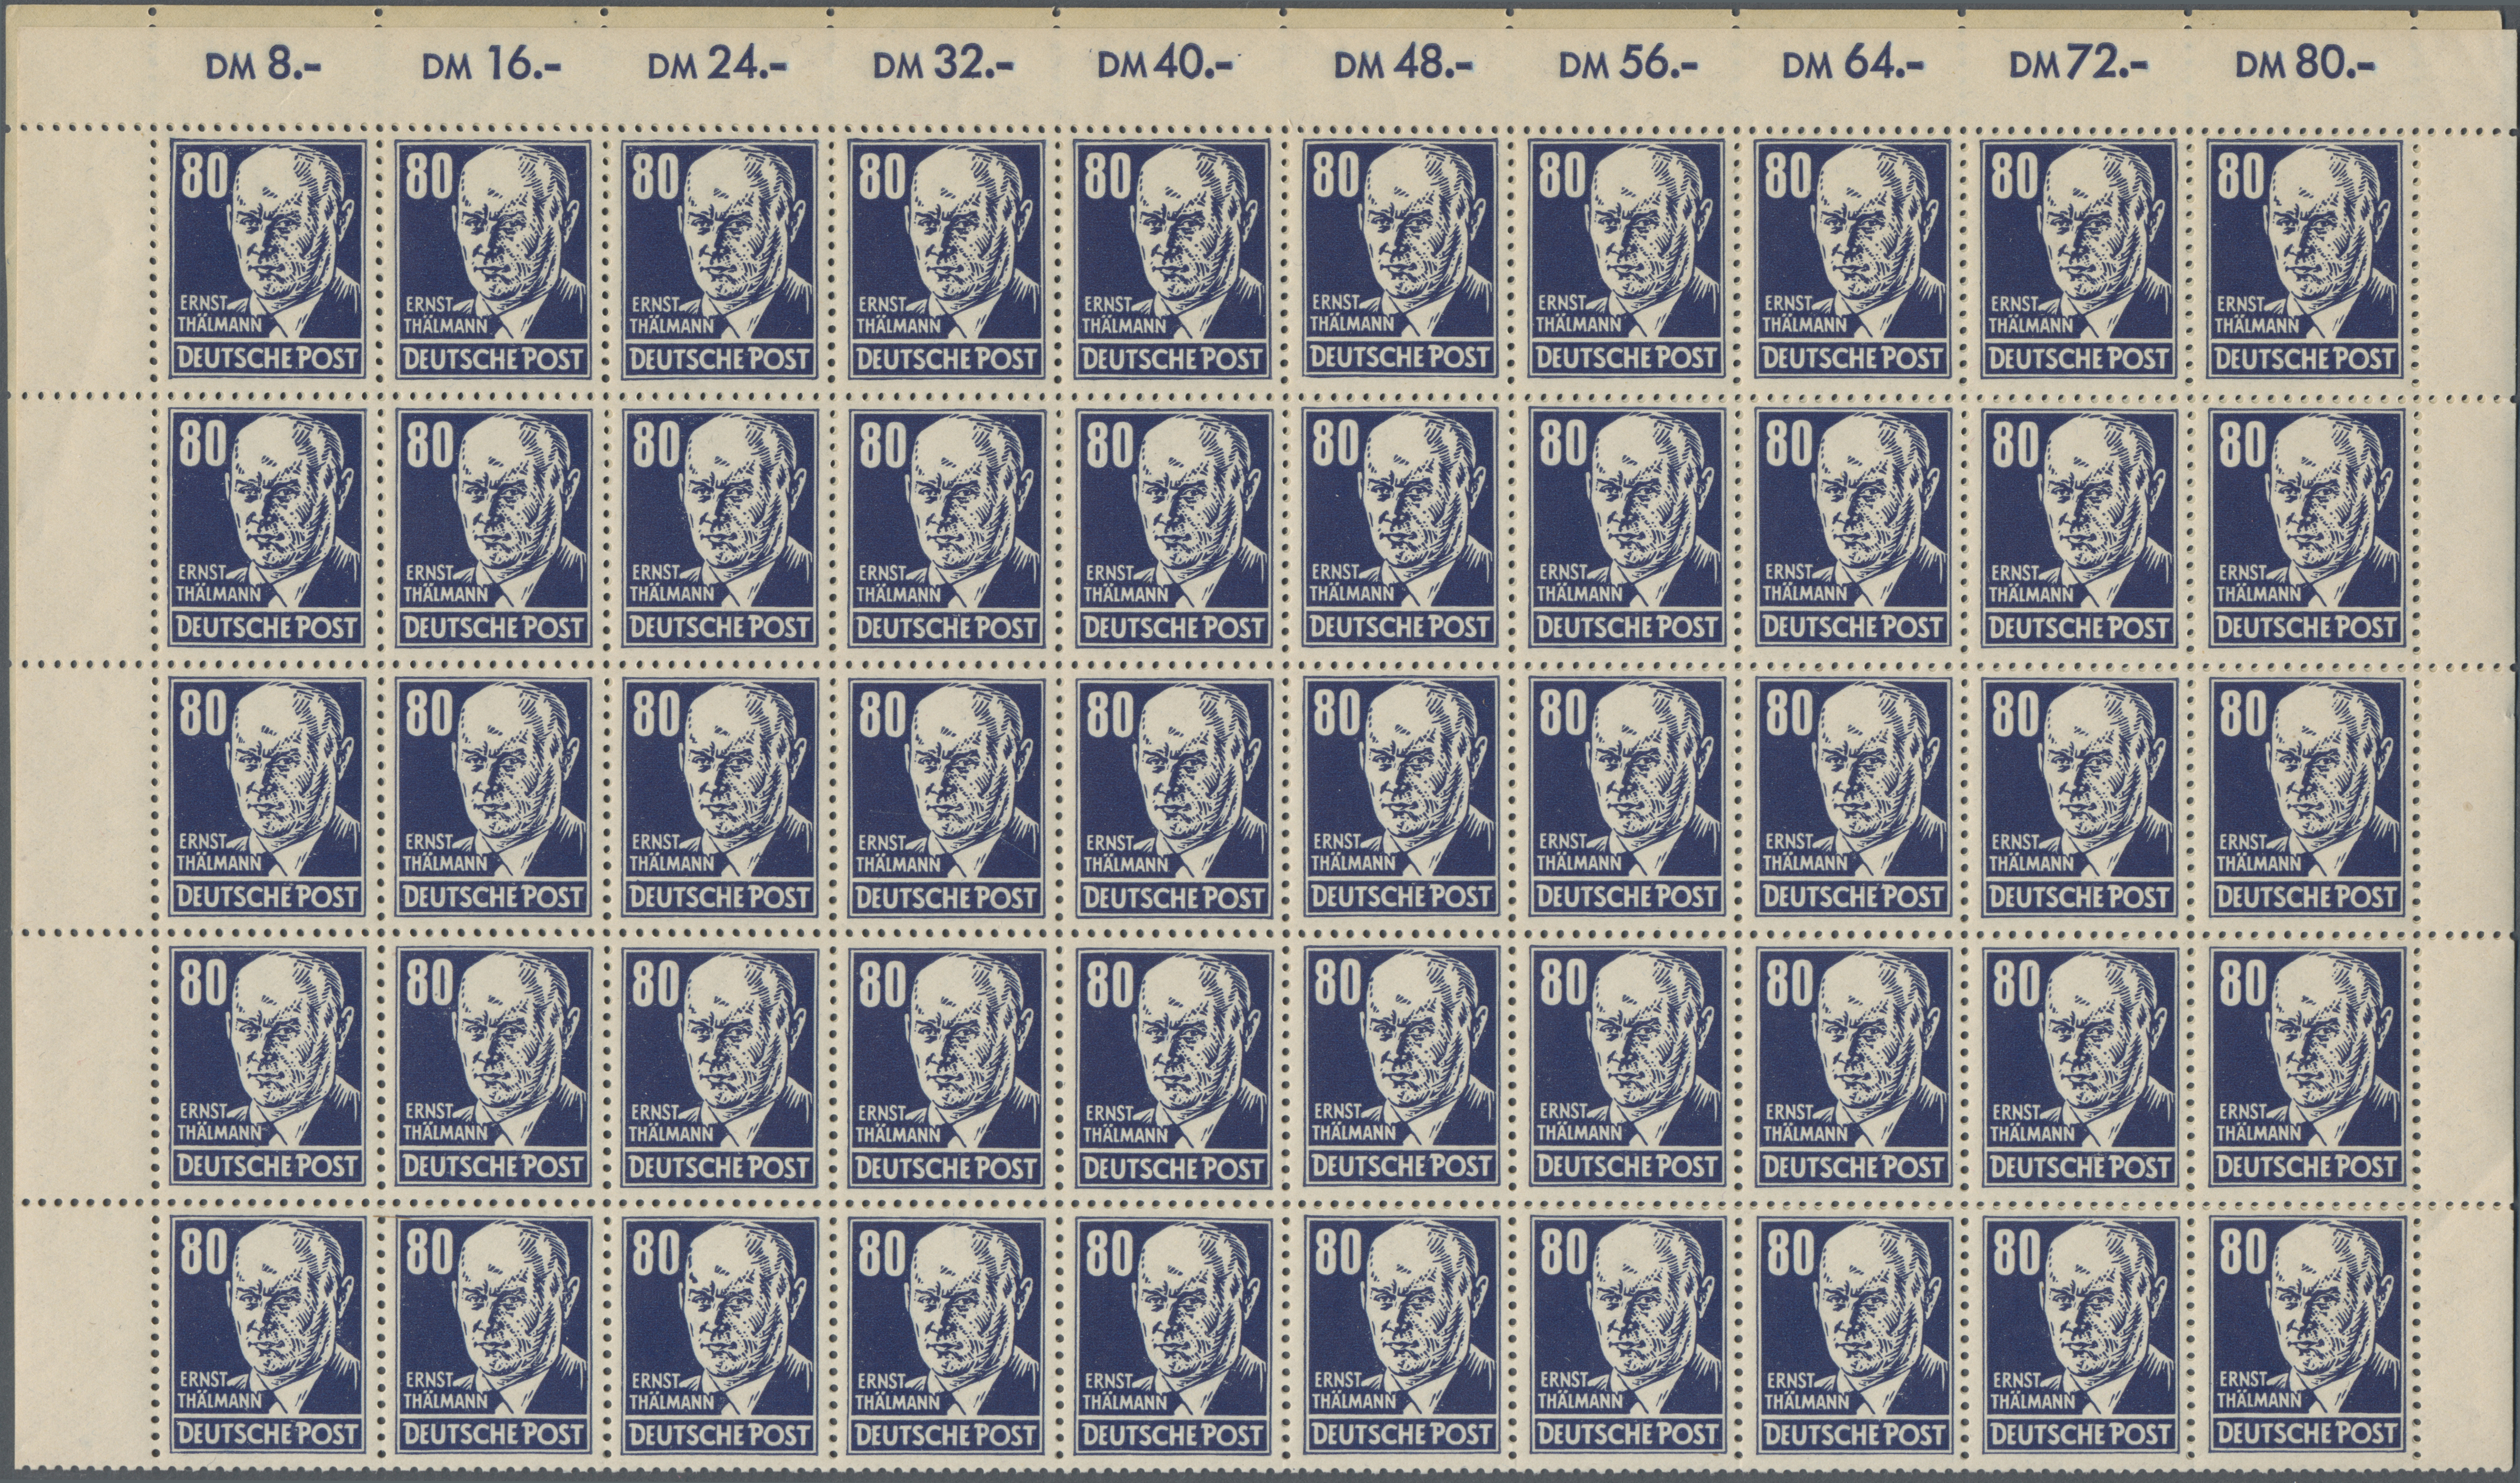 Lot 37383 - ddr  -  Auktionshaus Christoph Gärtner GmbH & Co. KG Sale #44 Collections Germany